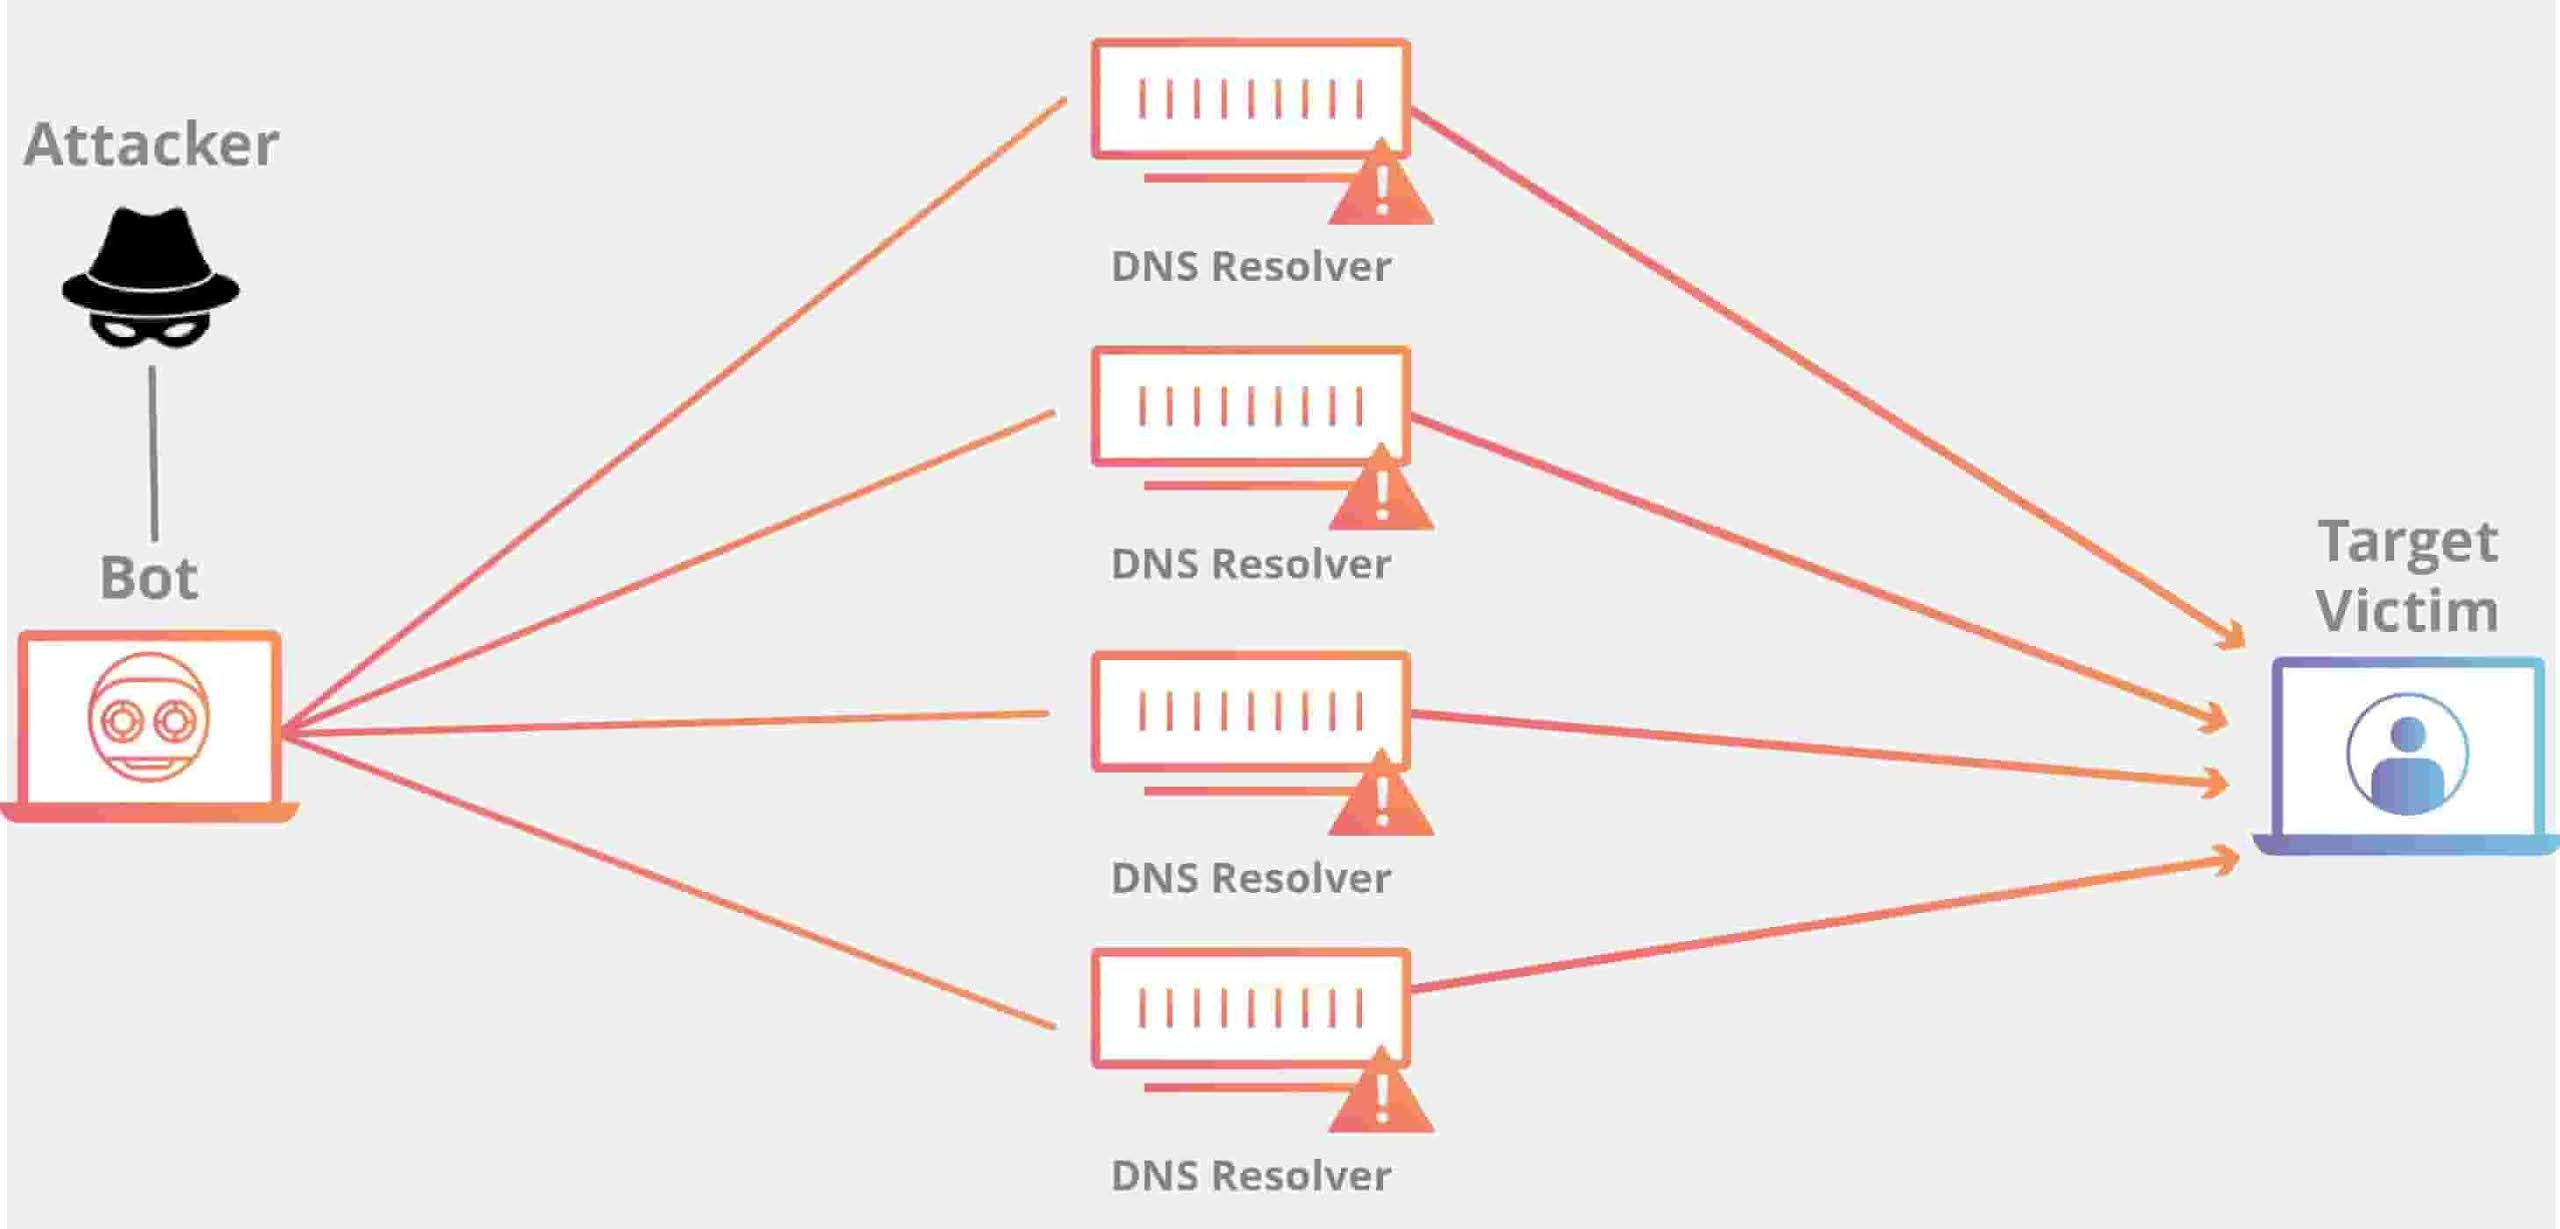 What is DDoS Attack (Distributed Denial-of-Service Attack)